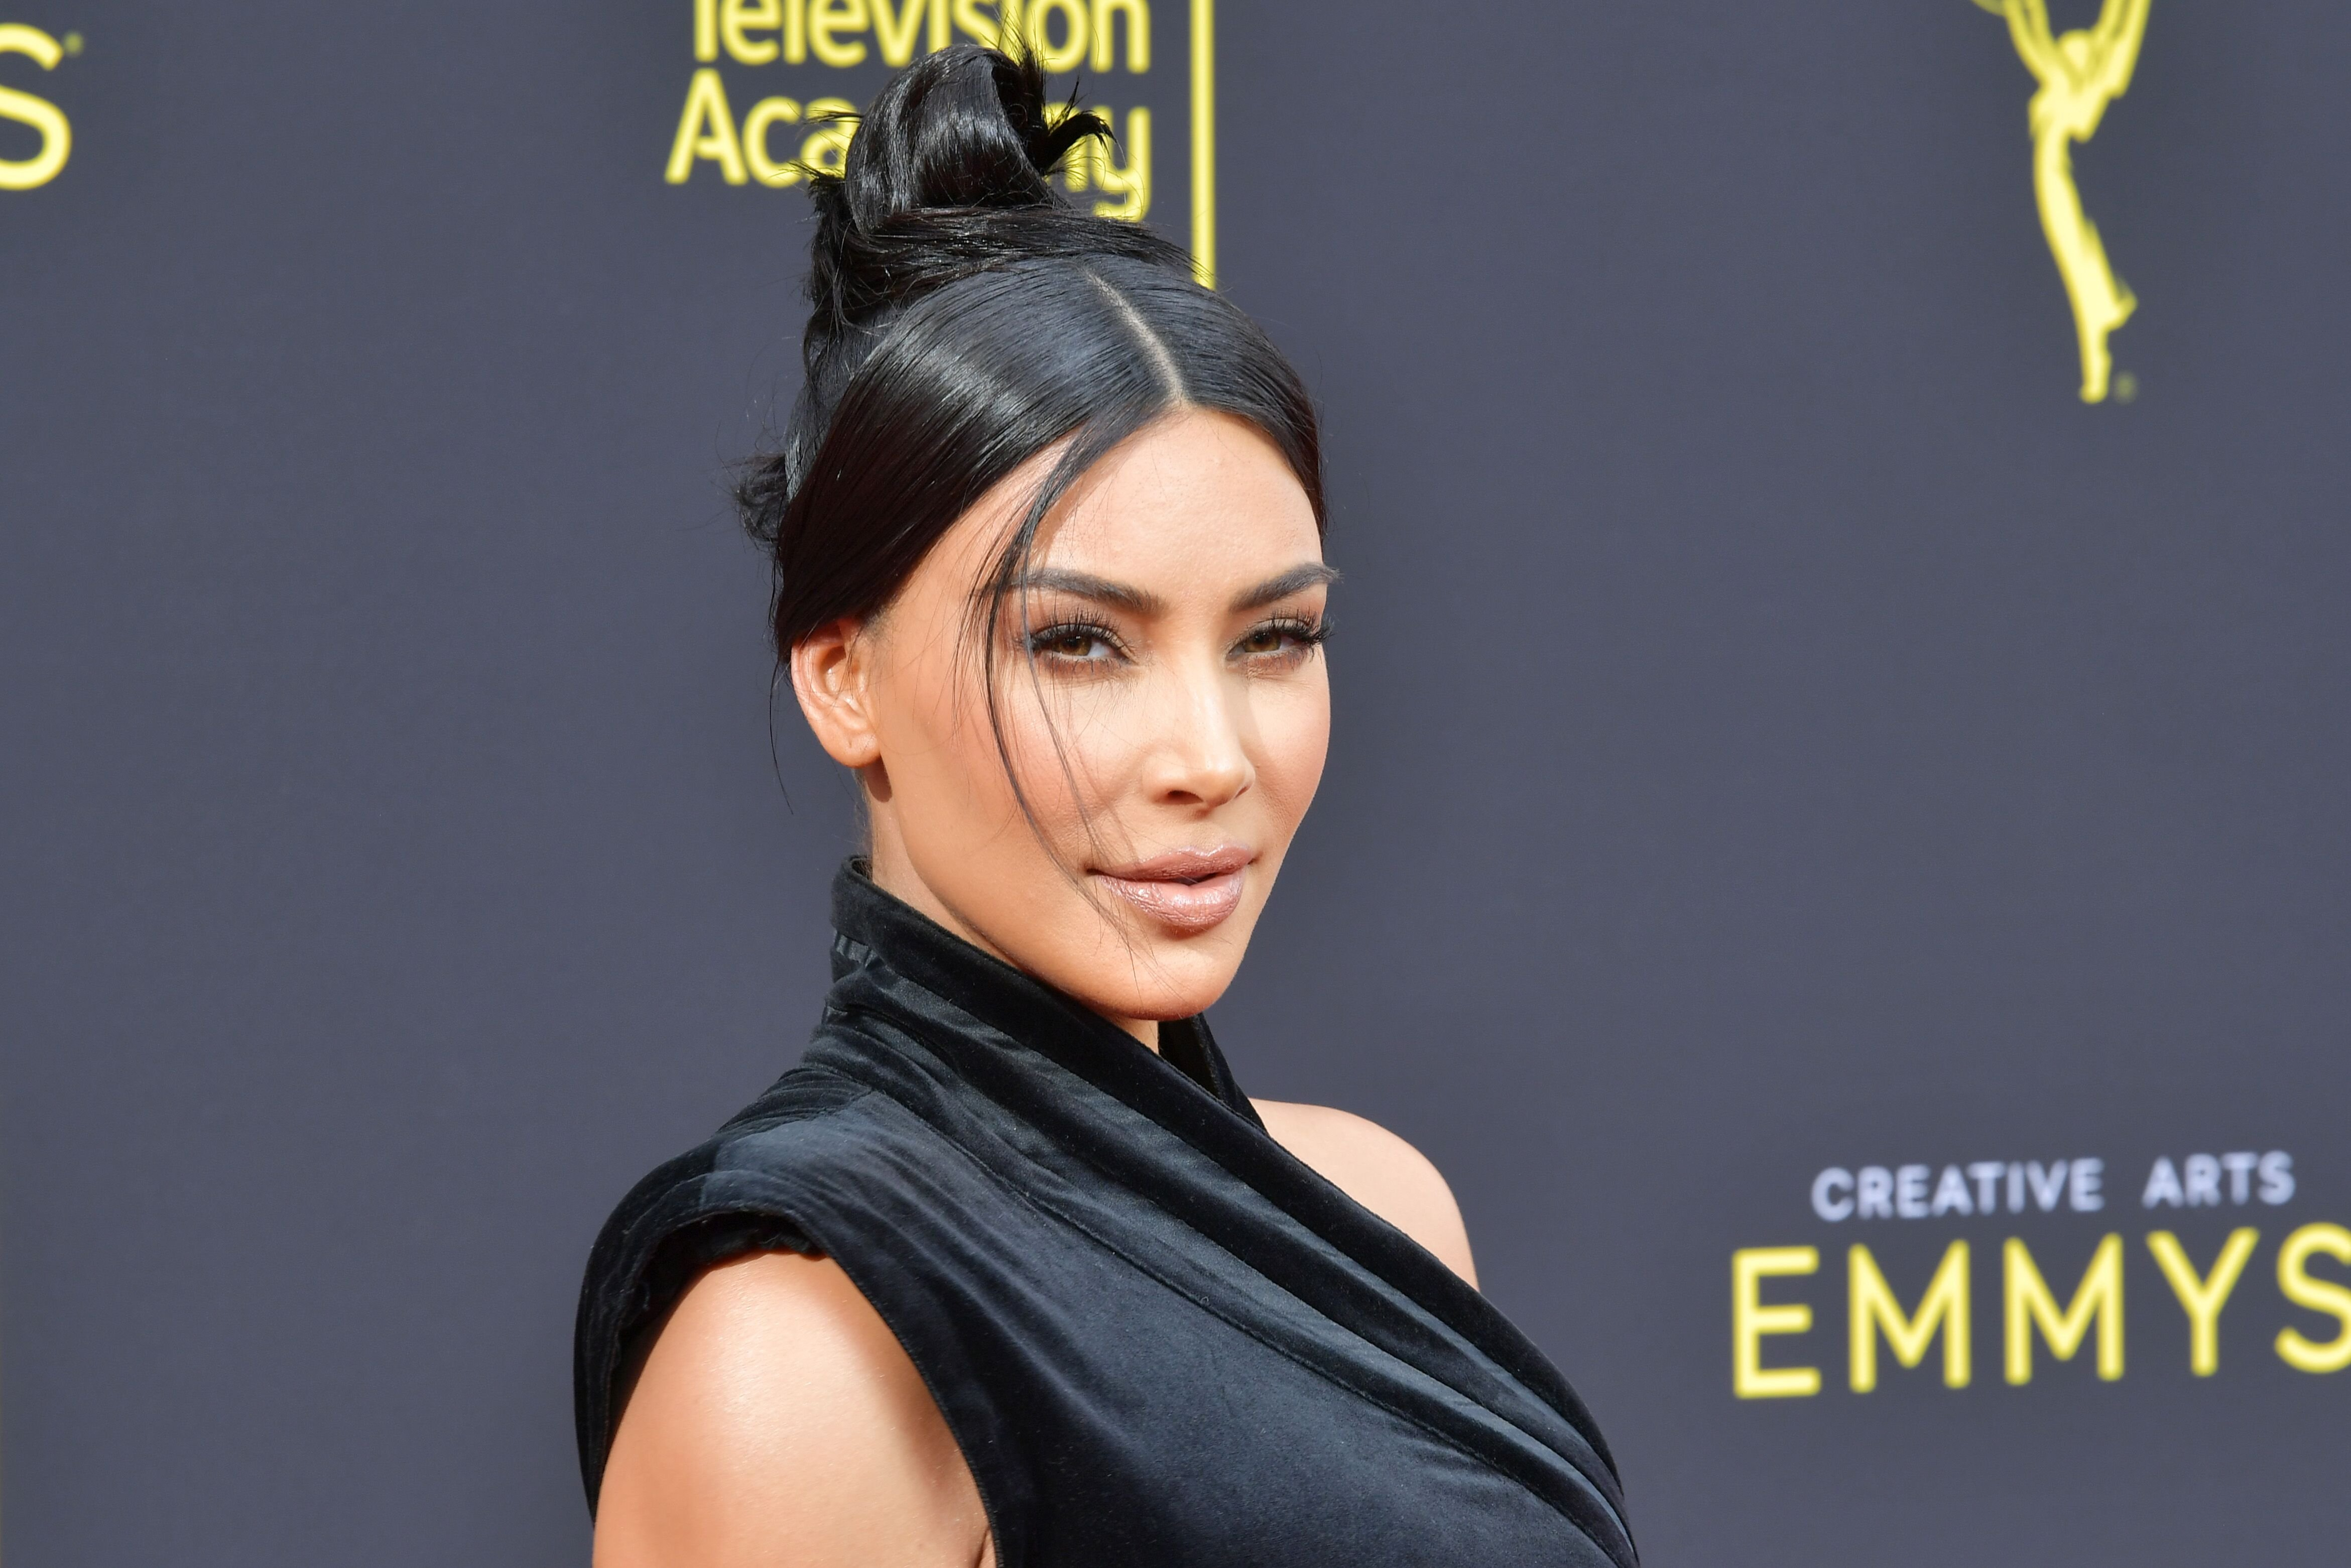 Kim Kardashian West attends the 2019 Creative Arts Emmy Awards on September 14, 2019 | Photo: Getty Images